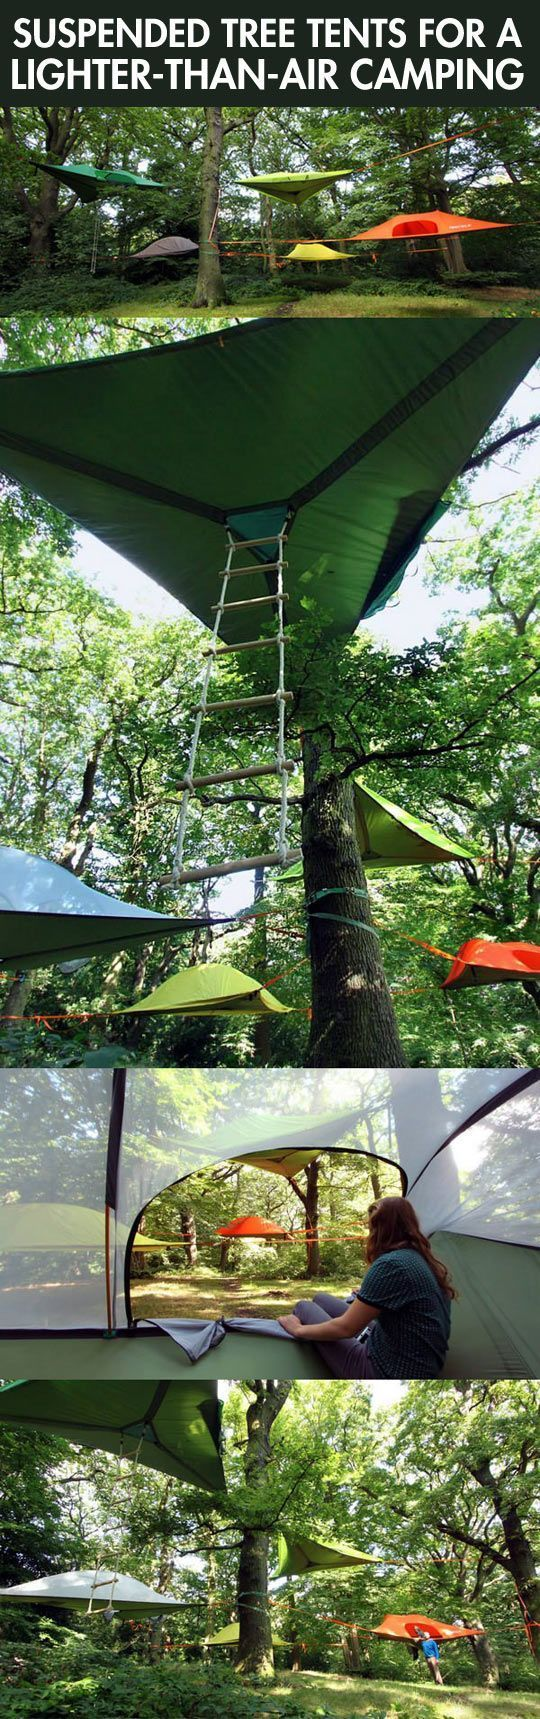 36 Awesome Products That Will Blow Your Mind Camping Tree tents! Awesome! Ideal for zombie apocalypse. Awesome Products That Will Blow Your Mind Camping Tree tents! Awesome! Ideal for zombie apocalypse.Camping Tree tents! Awesome! Ideal for zombie apocalypse.